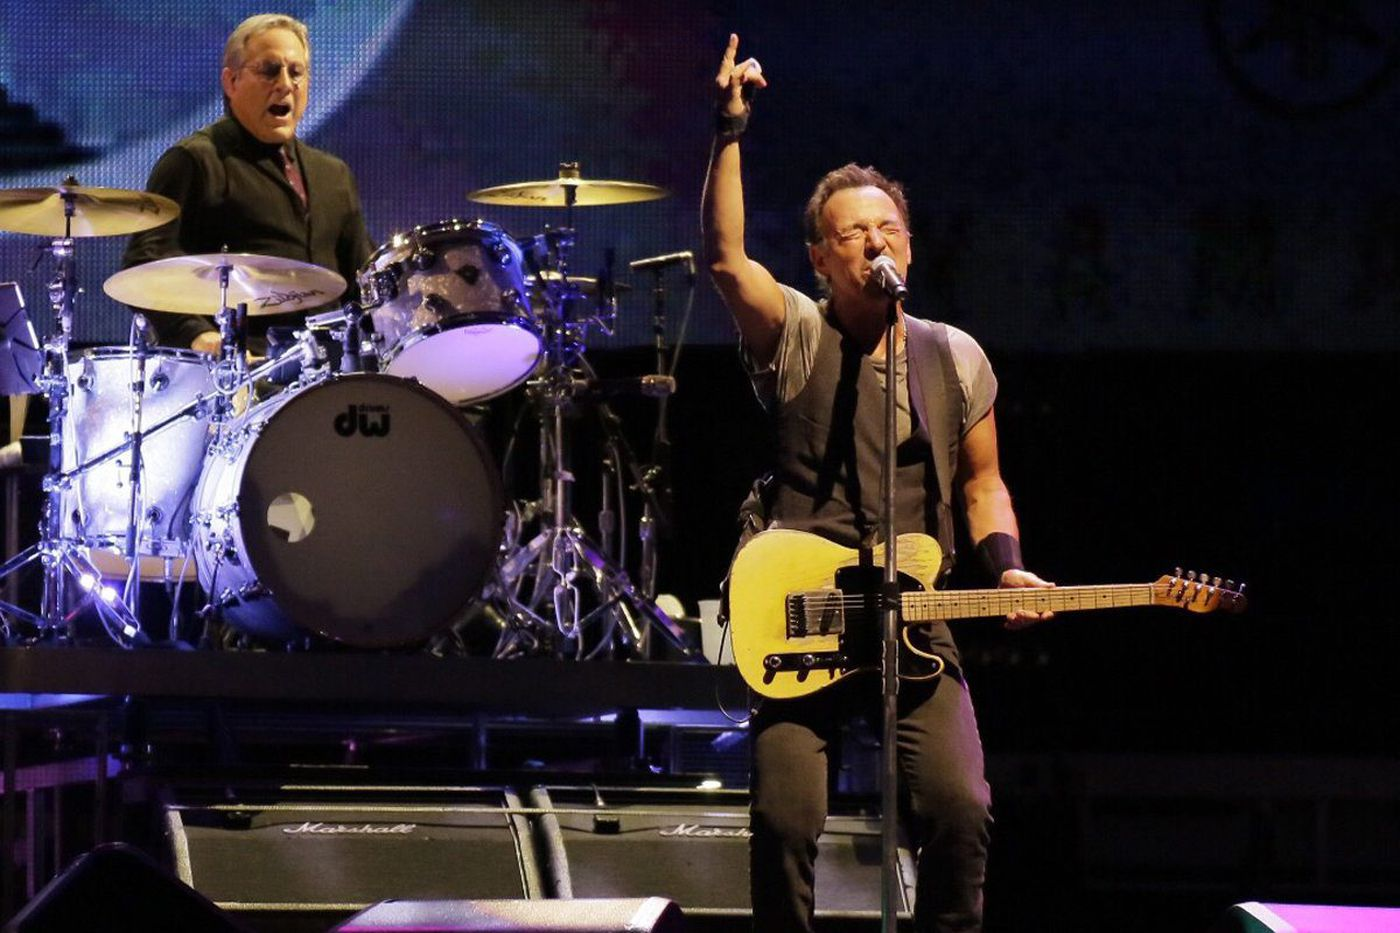 'Springsteen on Broadway' is happening: How to get tickets